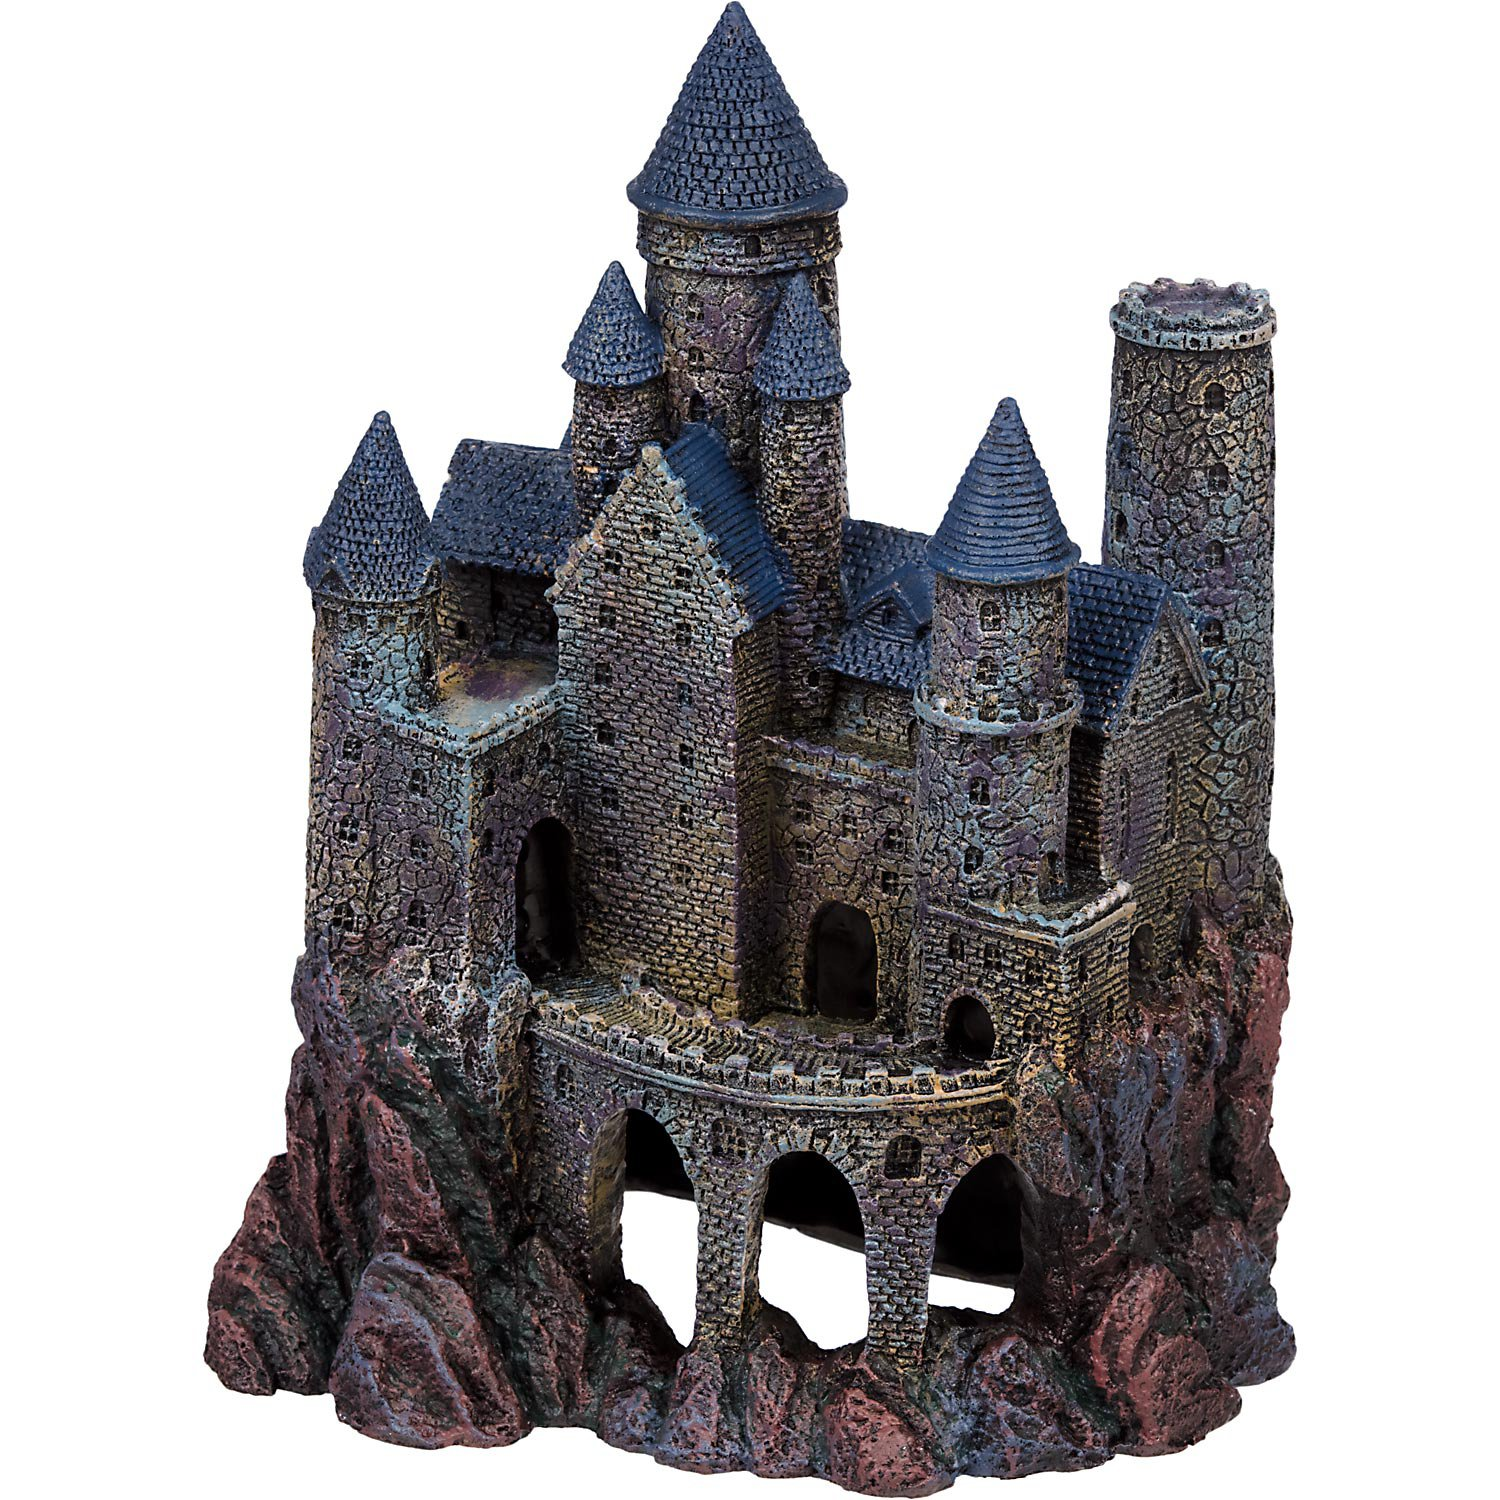 penn plax large magical castle aquarium ornament | petco